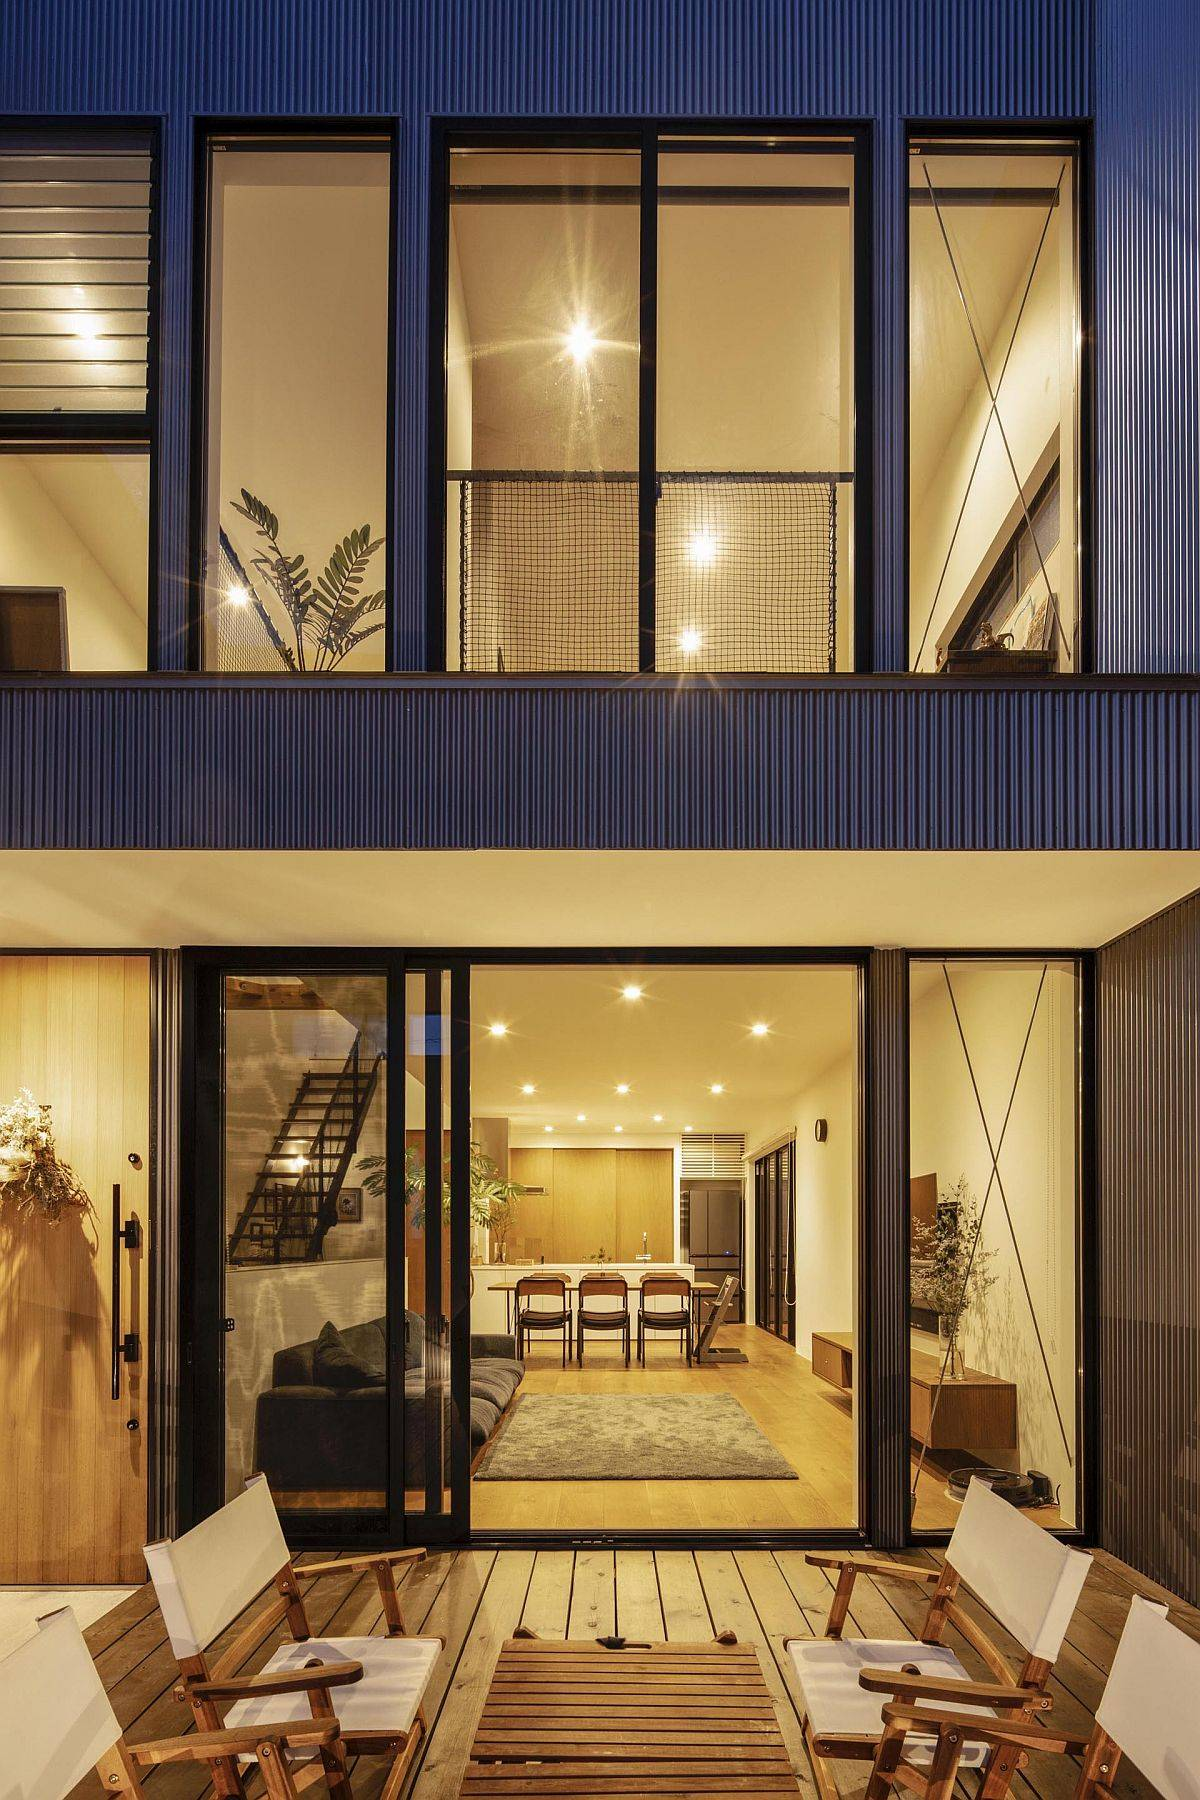 Multi-level home in Japan that combines privacy with a spacious, well-lit interior